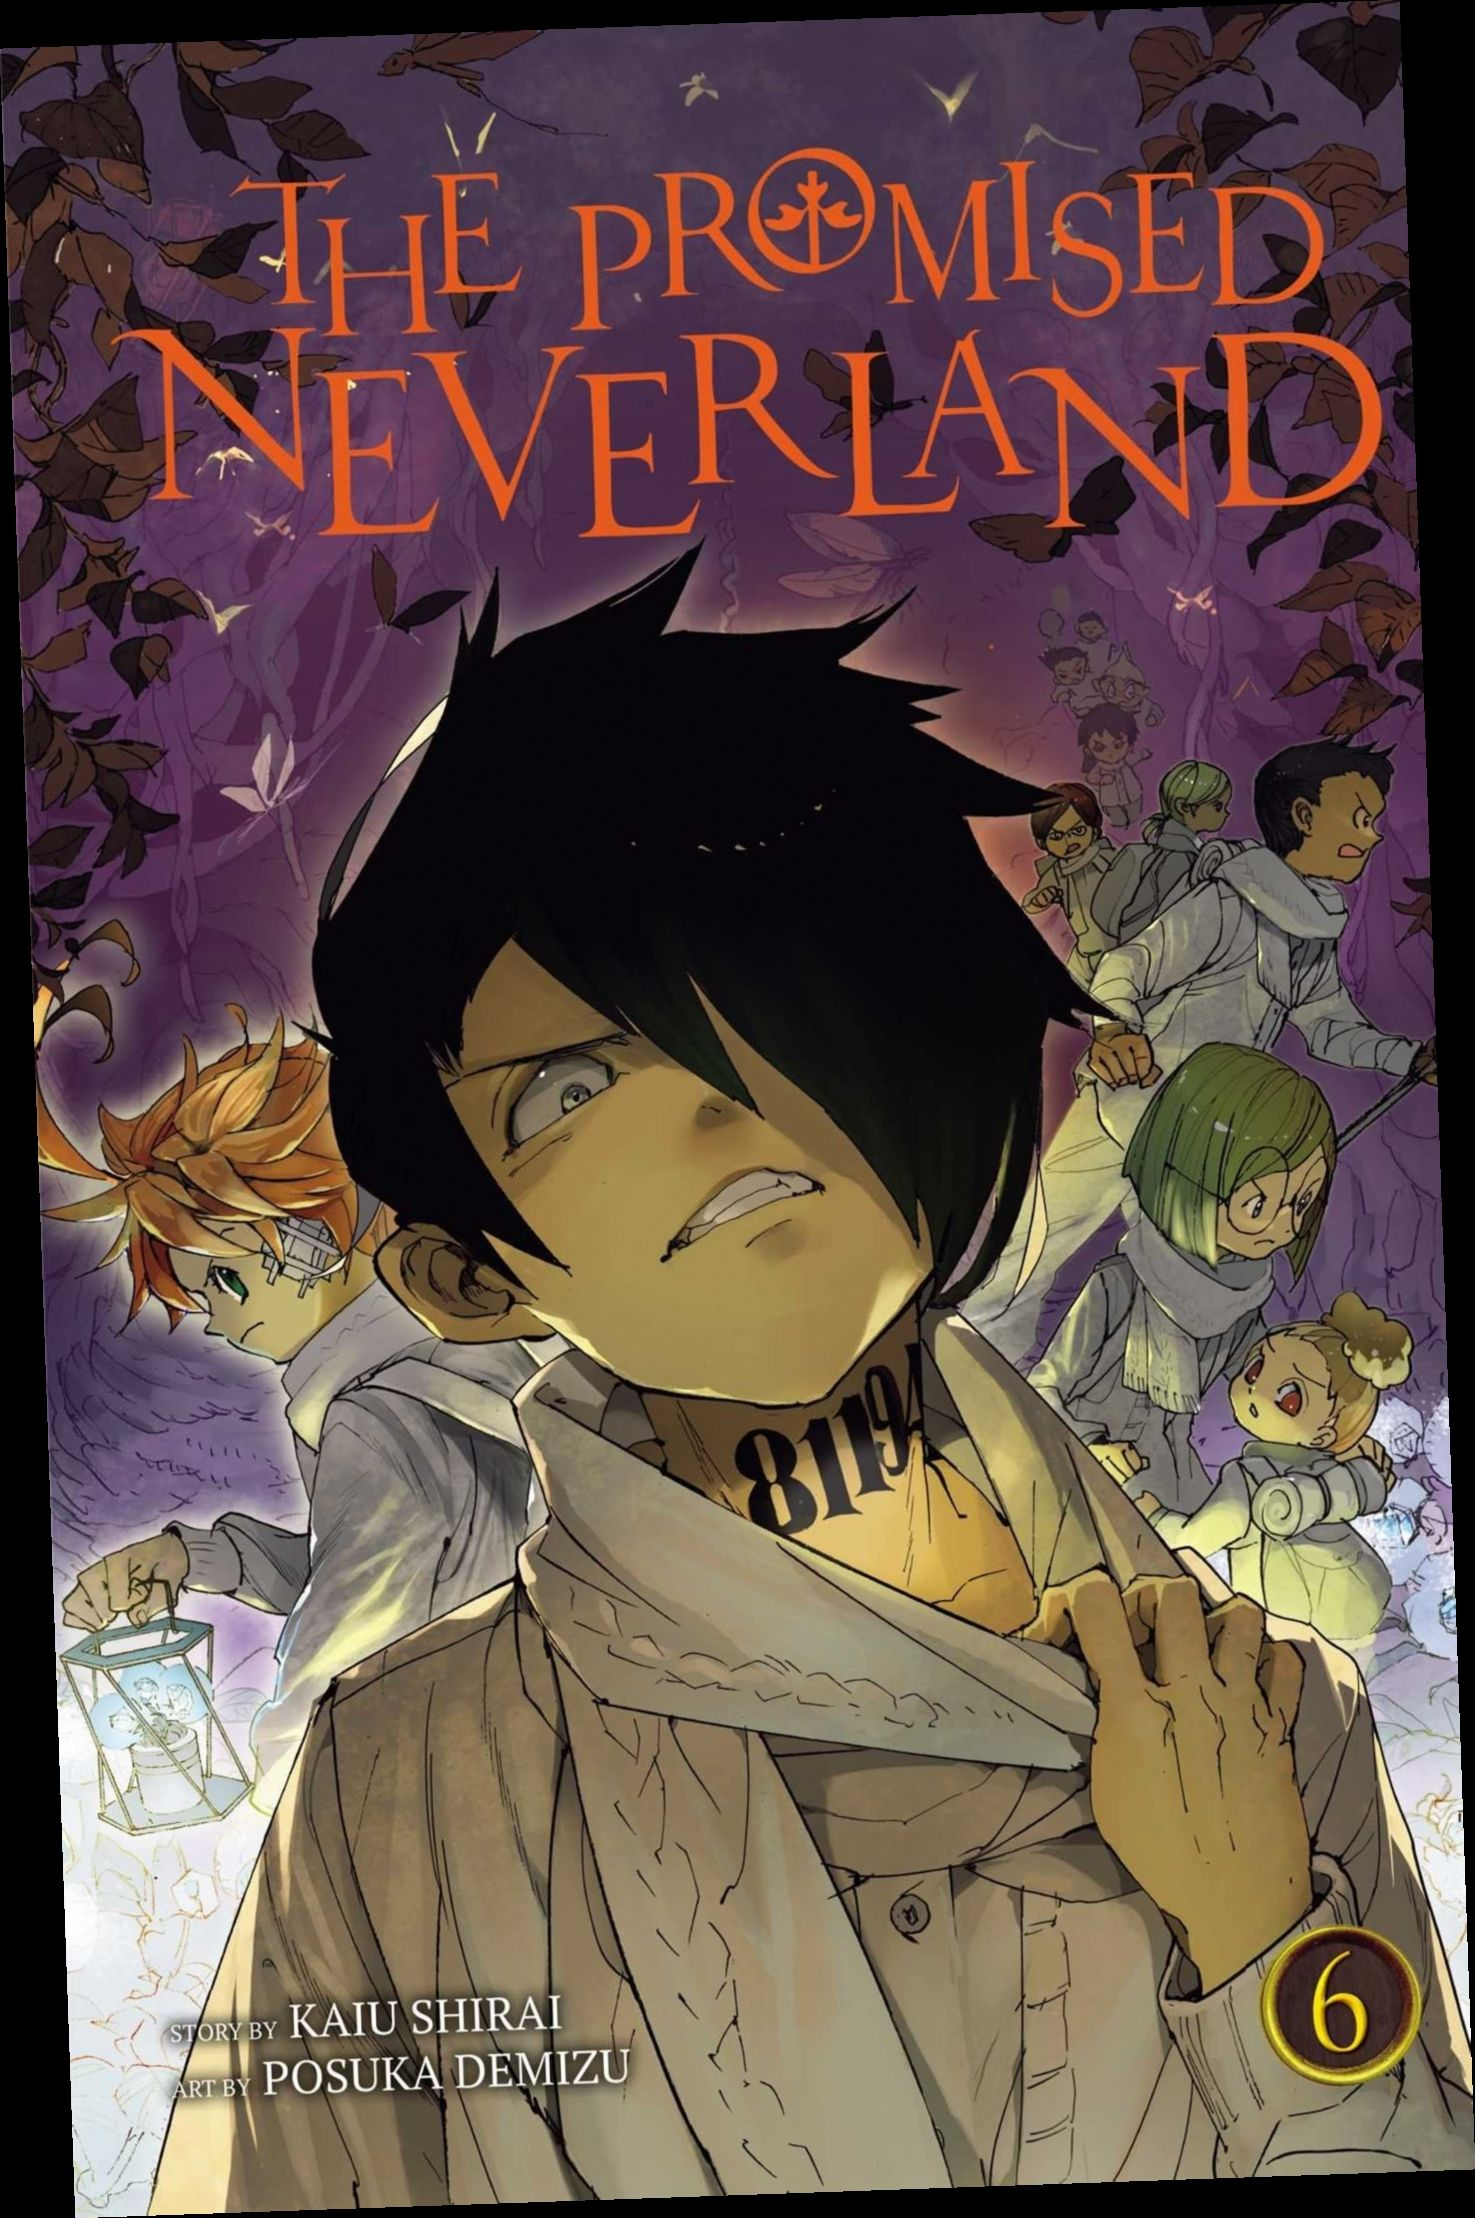 Ebook Pdf Epub Download The Promised Neverland Vol 6 By Kaiu Shirai Japanese Poster Design Aesthetic Anime Neverland Art